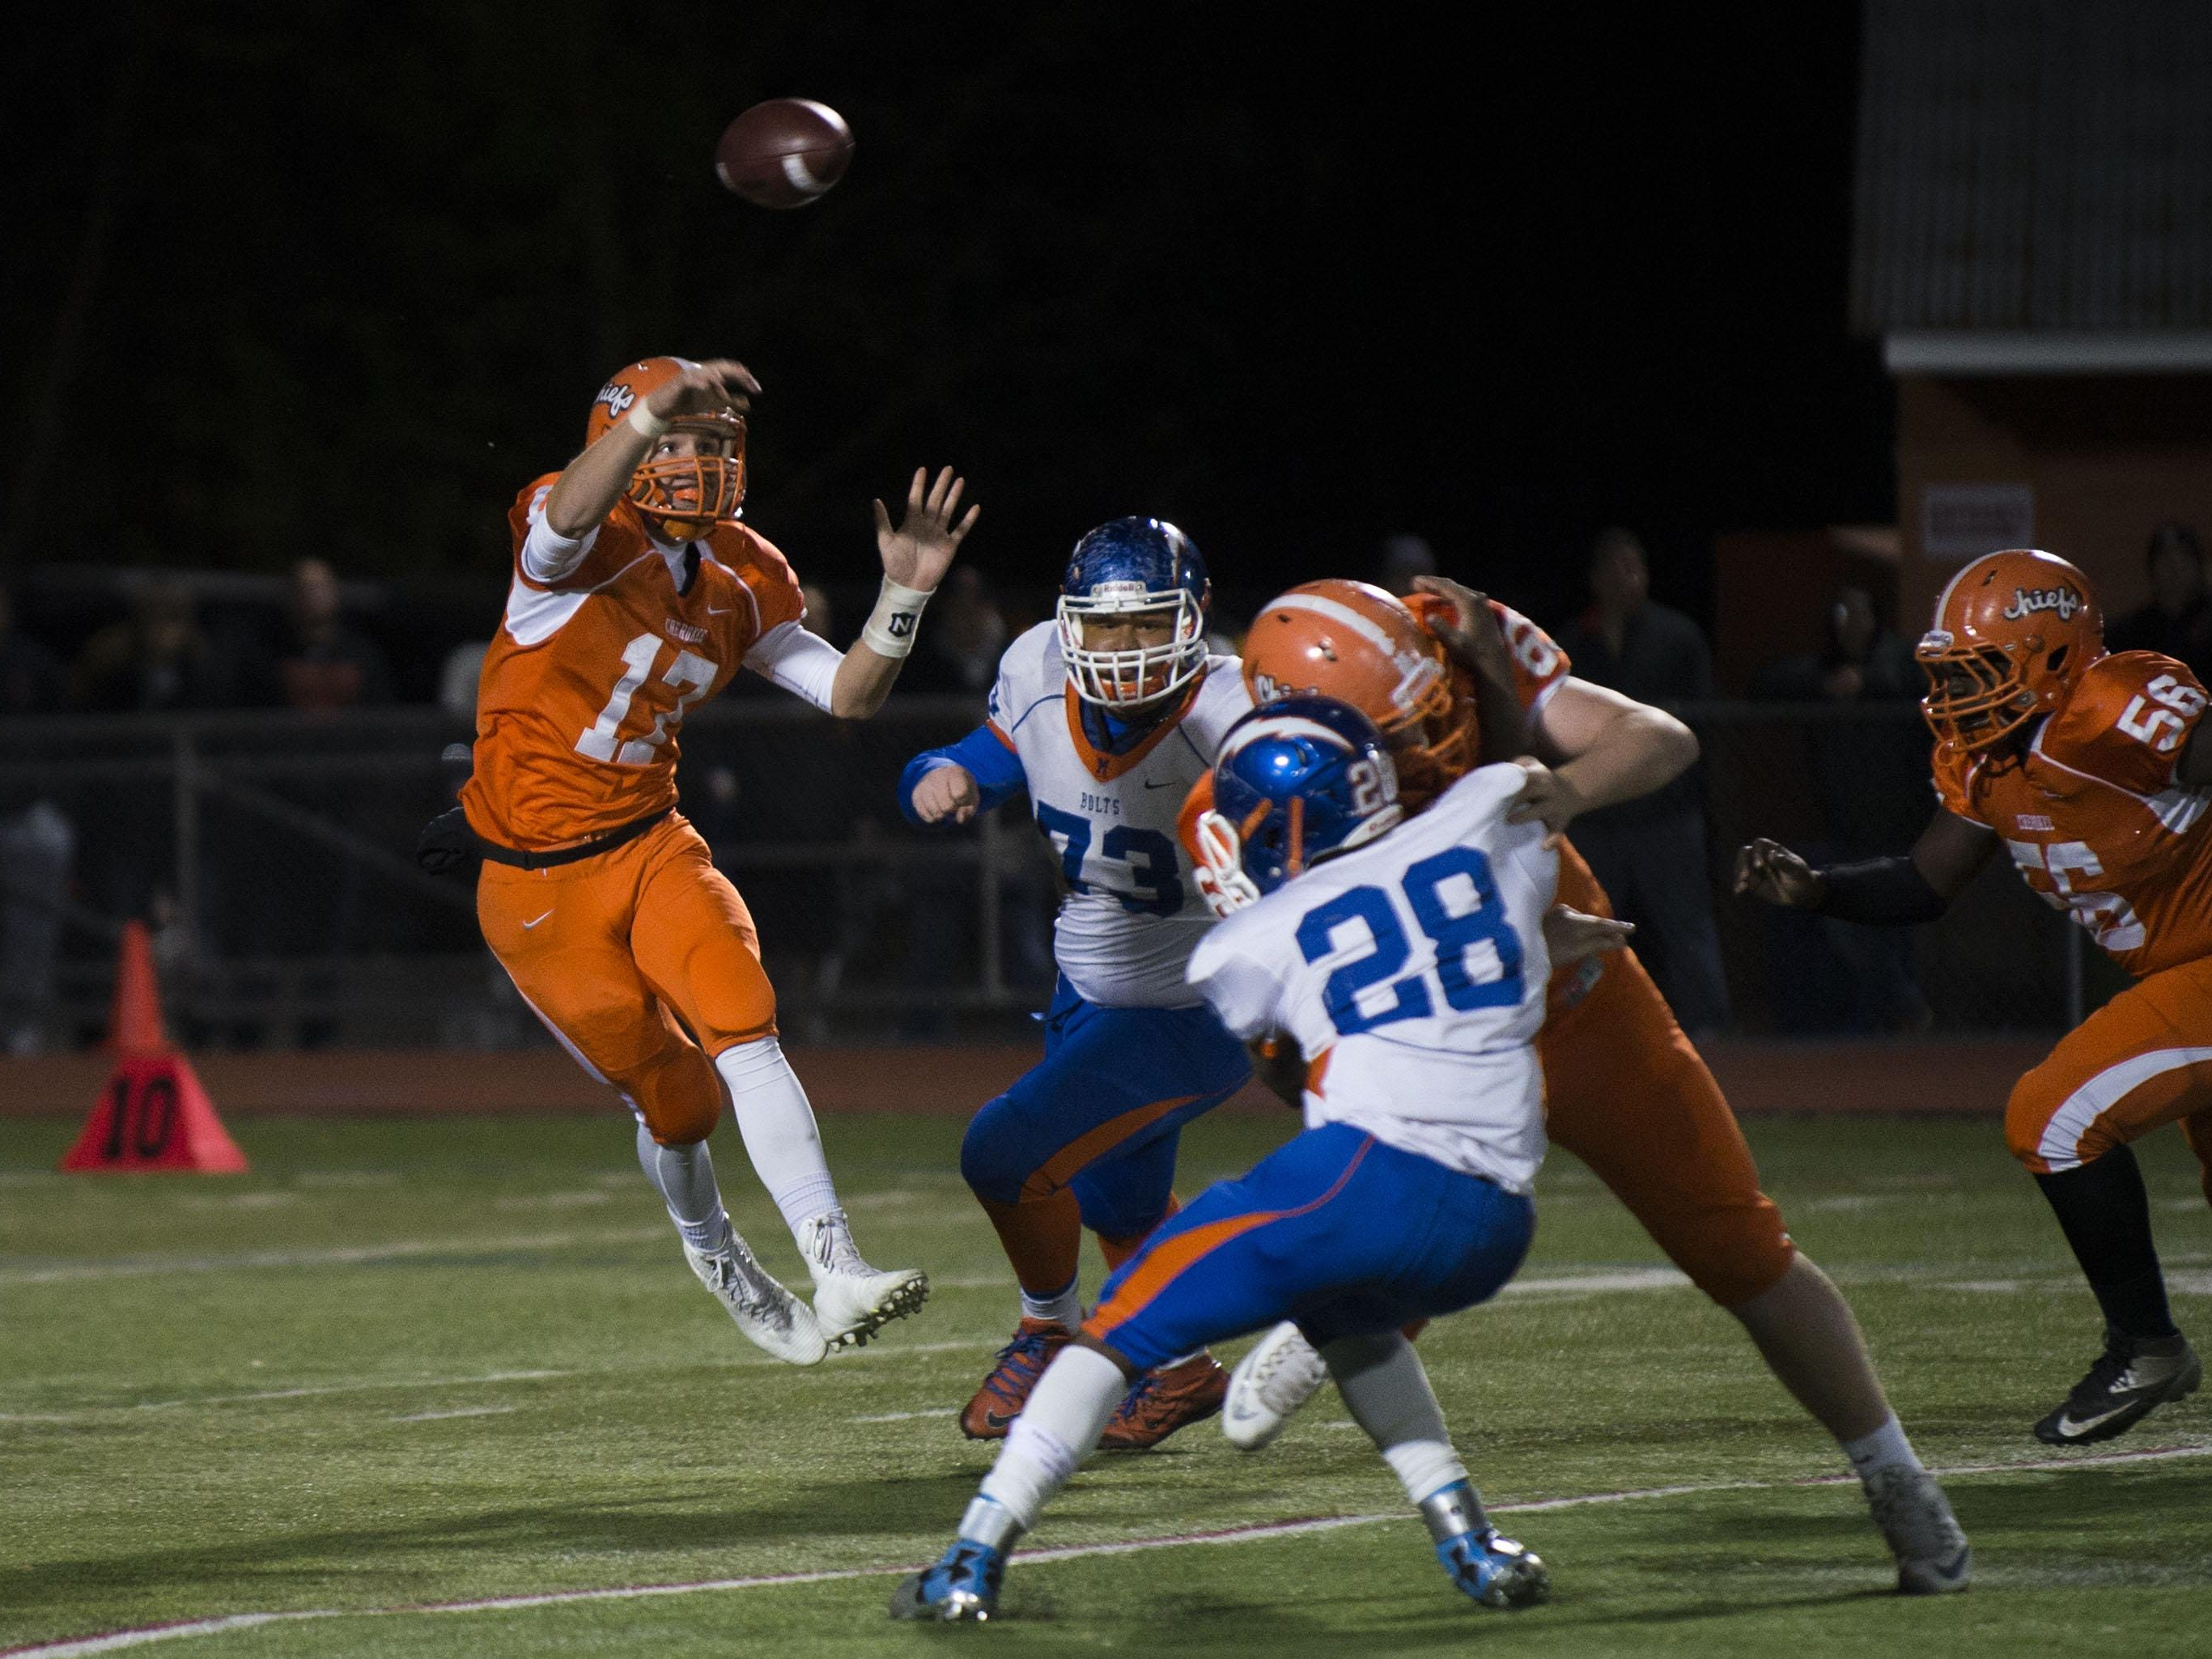 Cherokee's Jacob Bodine launches a pass in a game against Millville Friday, Nov. 13 in Marlton.